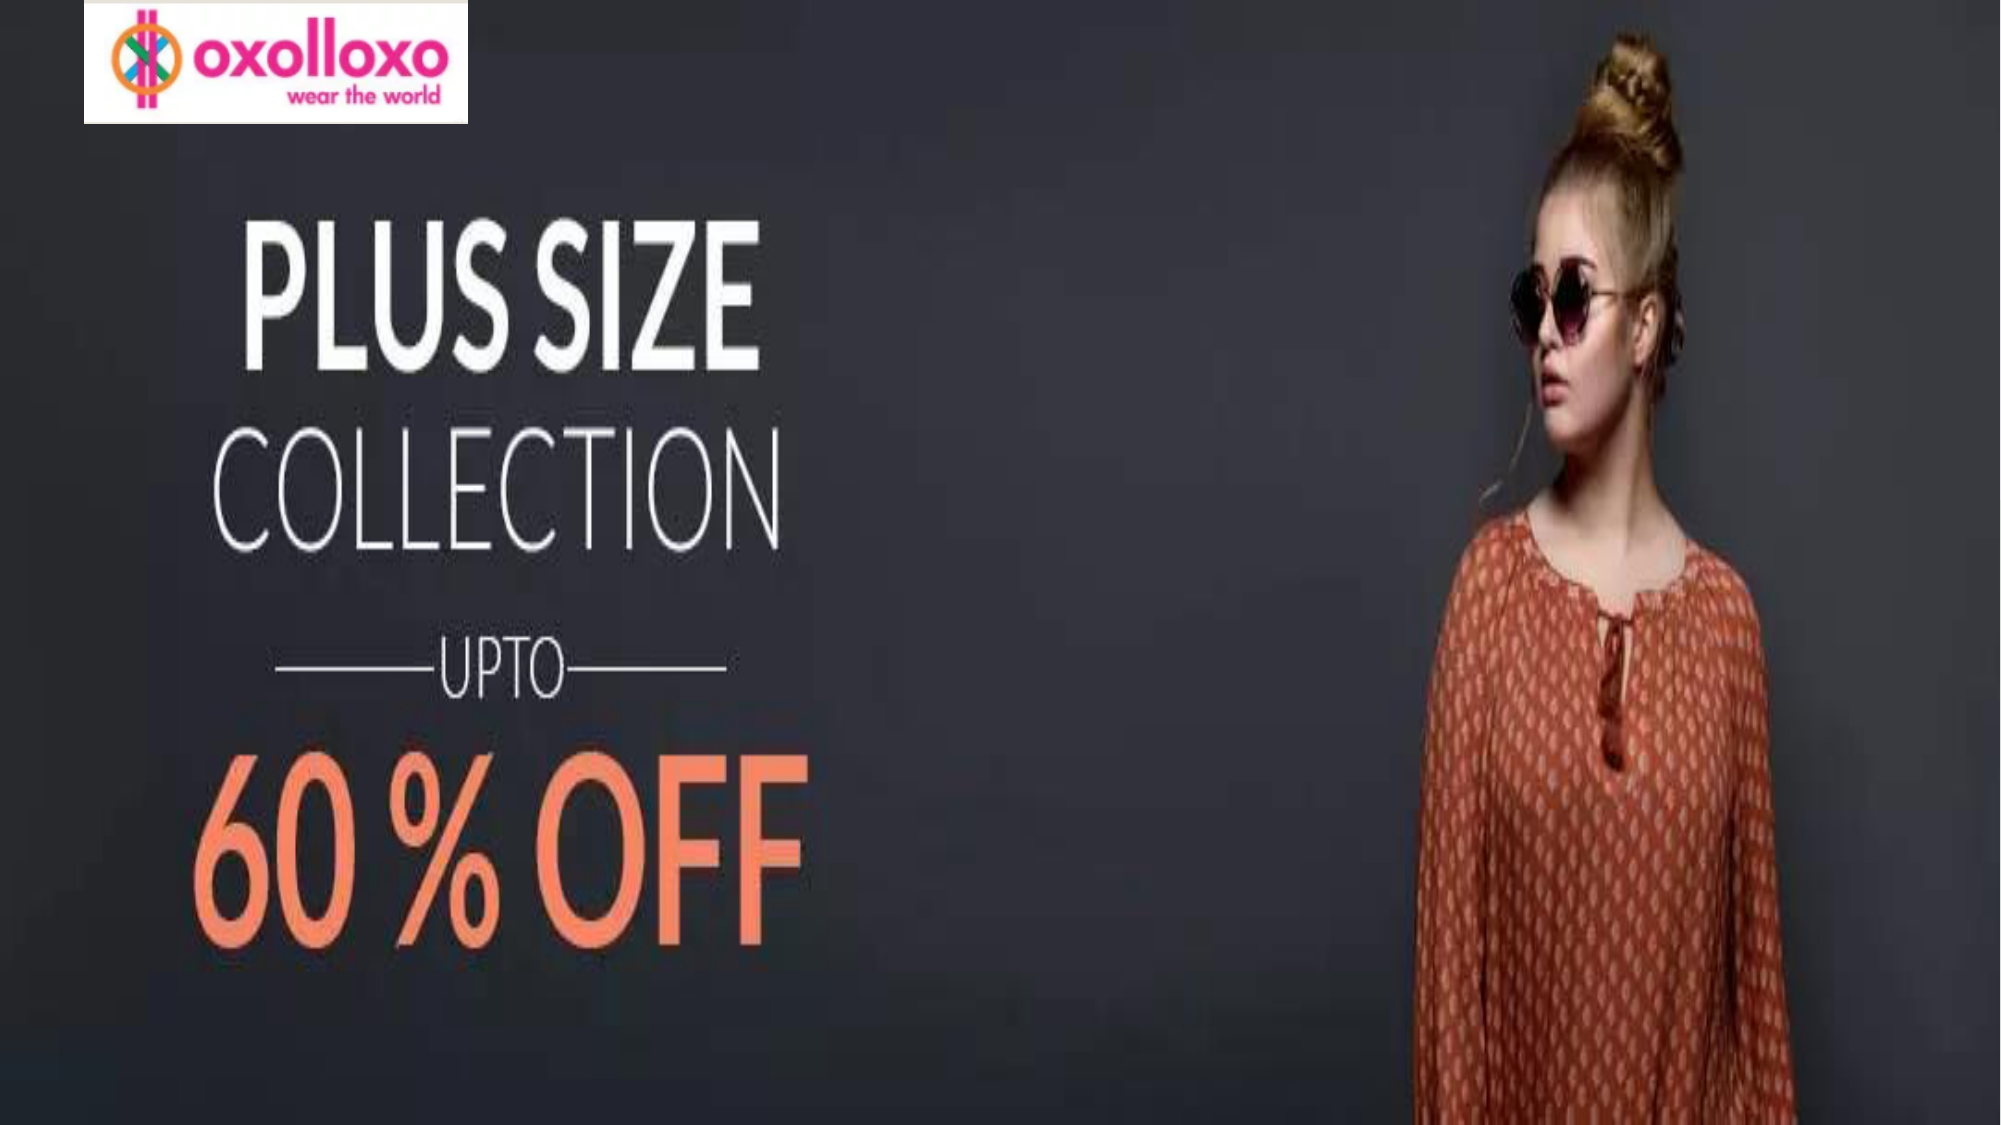 ad2ace5f8e9 Buy Sexy Plus Size Dresses Online from oxolloxo India